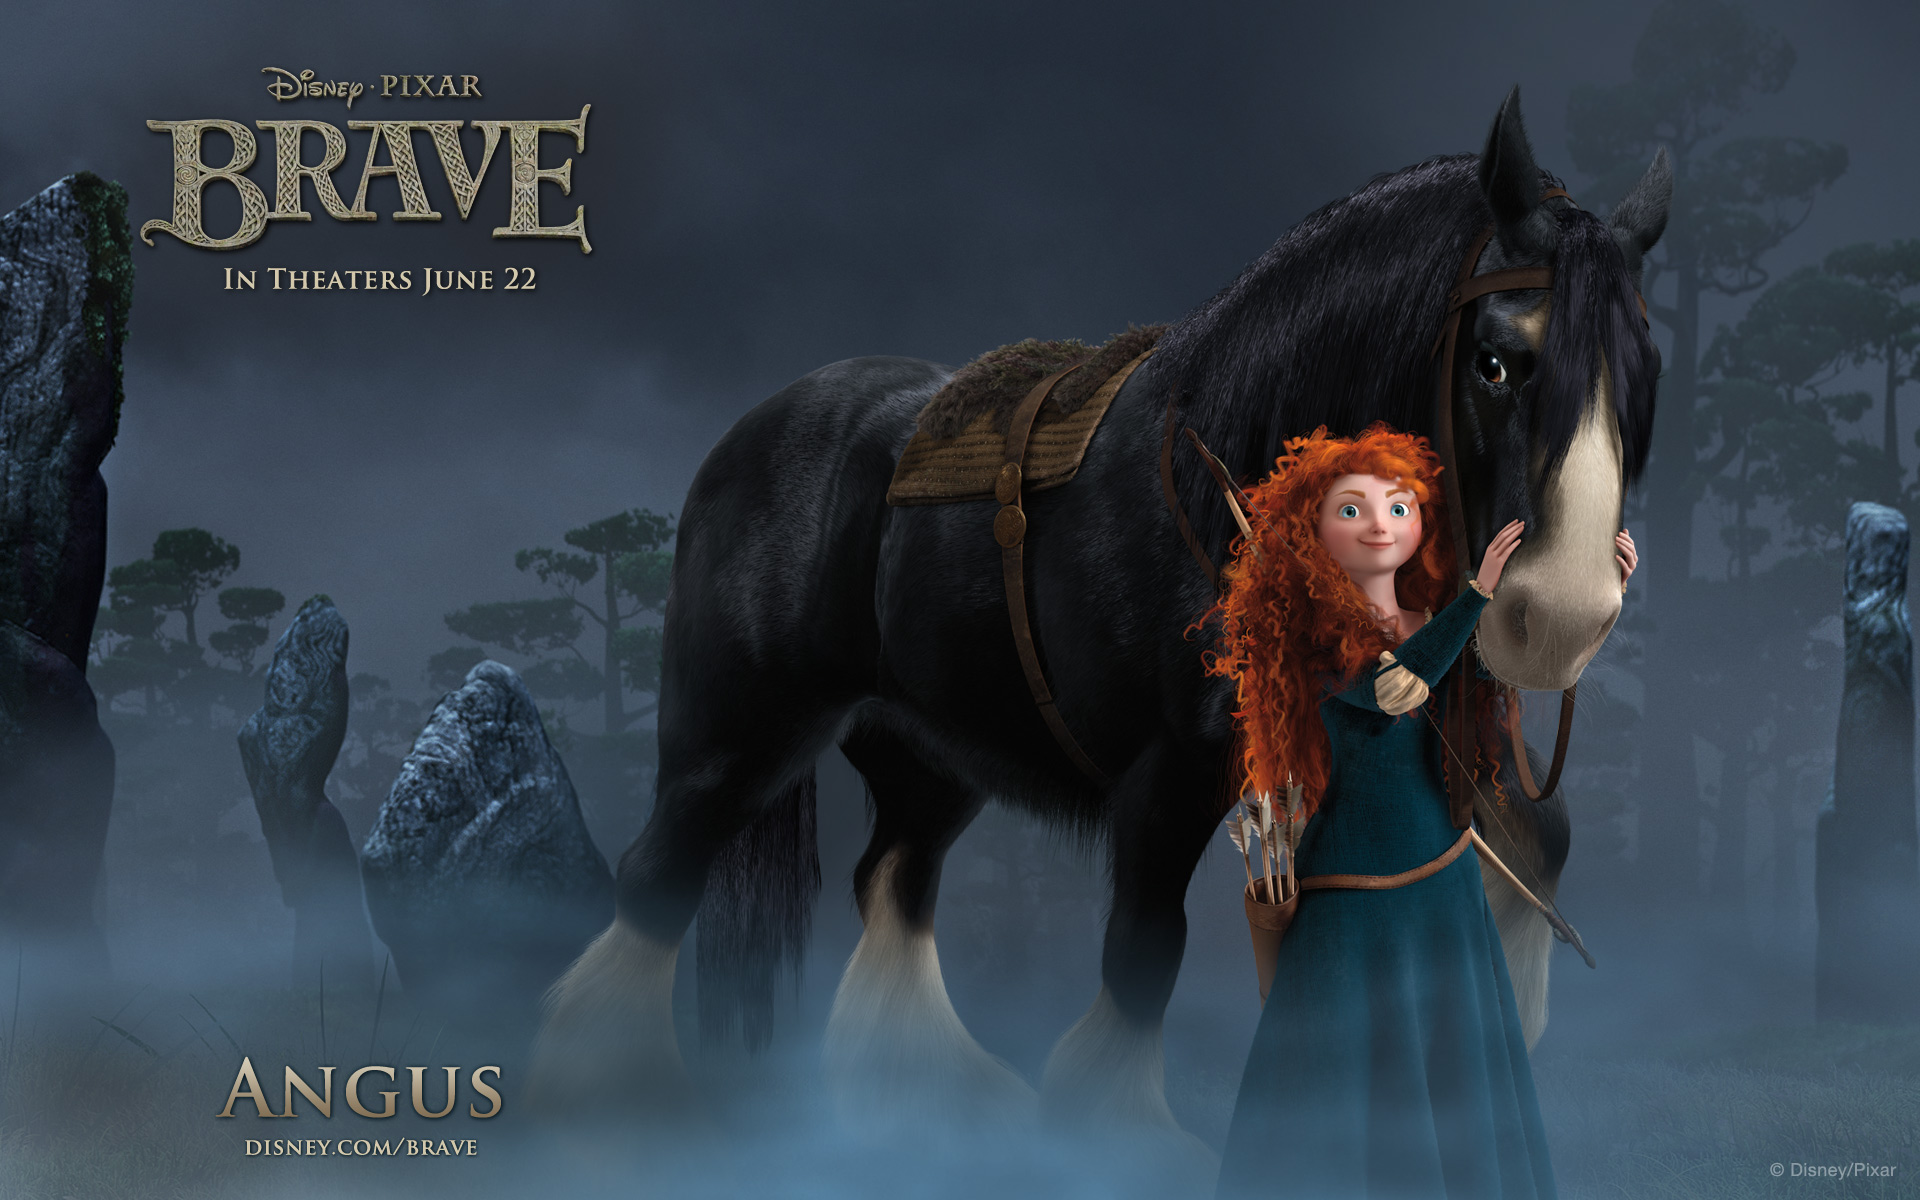 Watch: New 'Brave' TV Spot Hits The Airwaves